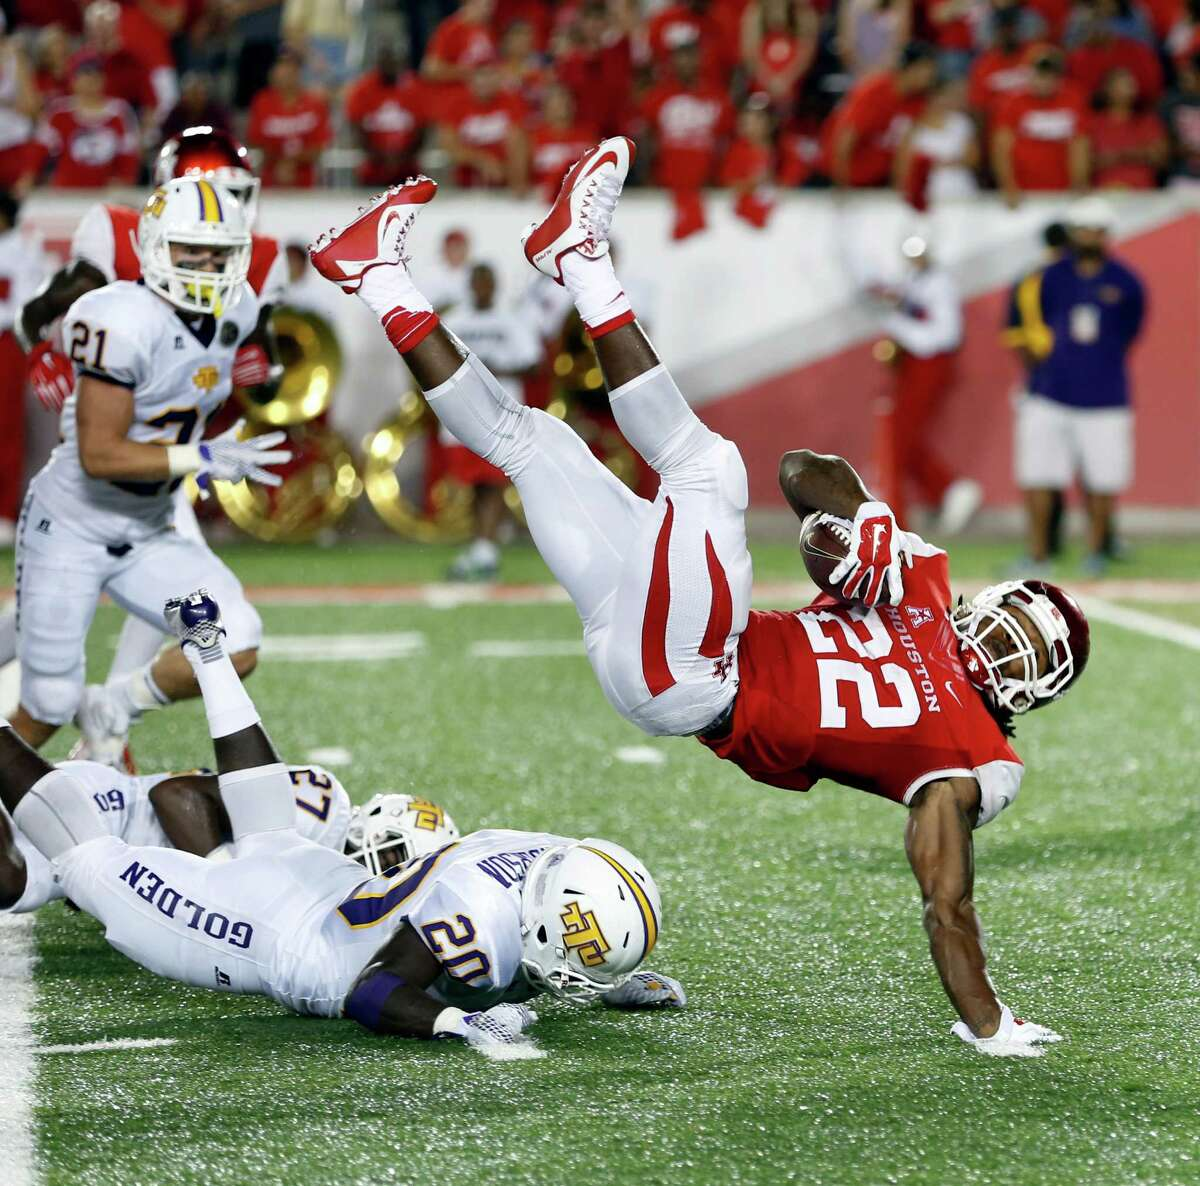 UH's Ryan Jackson sails over Tennessee Tech players for a short gain Saturday Sept. 5, 2015